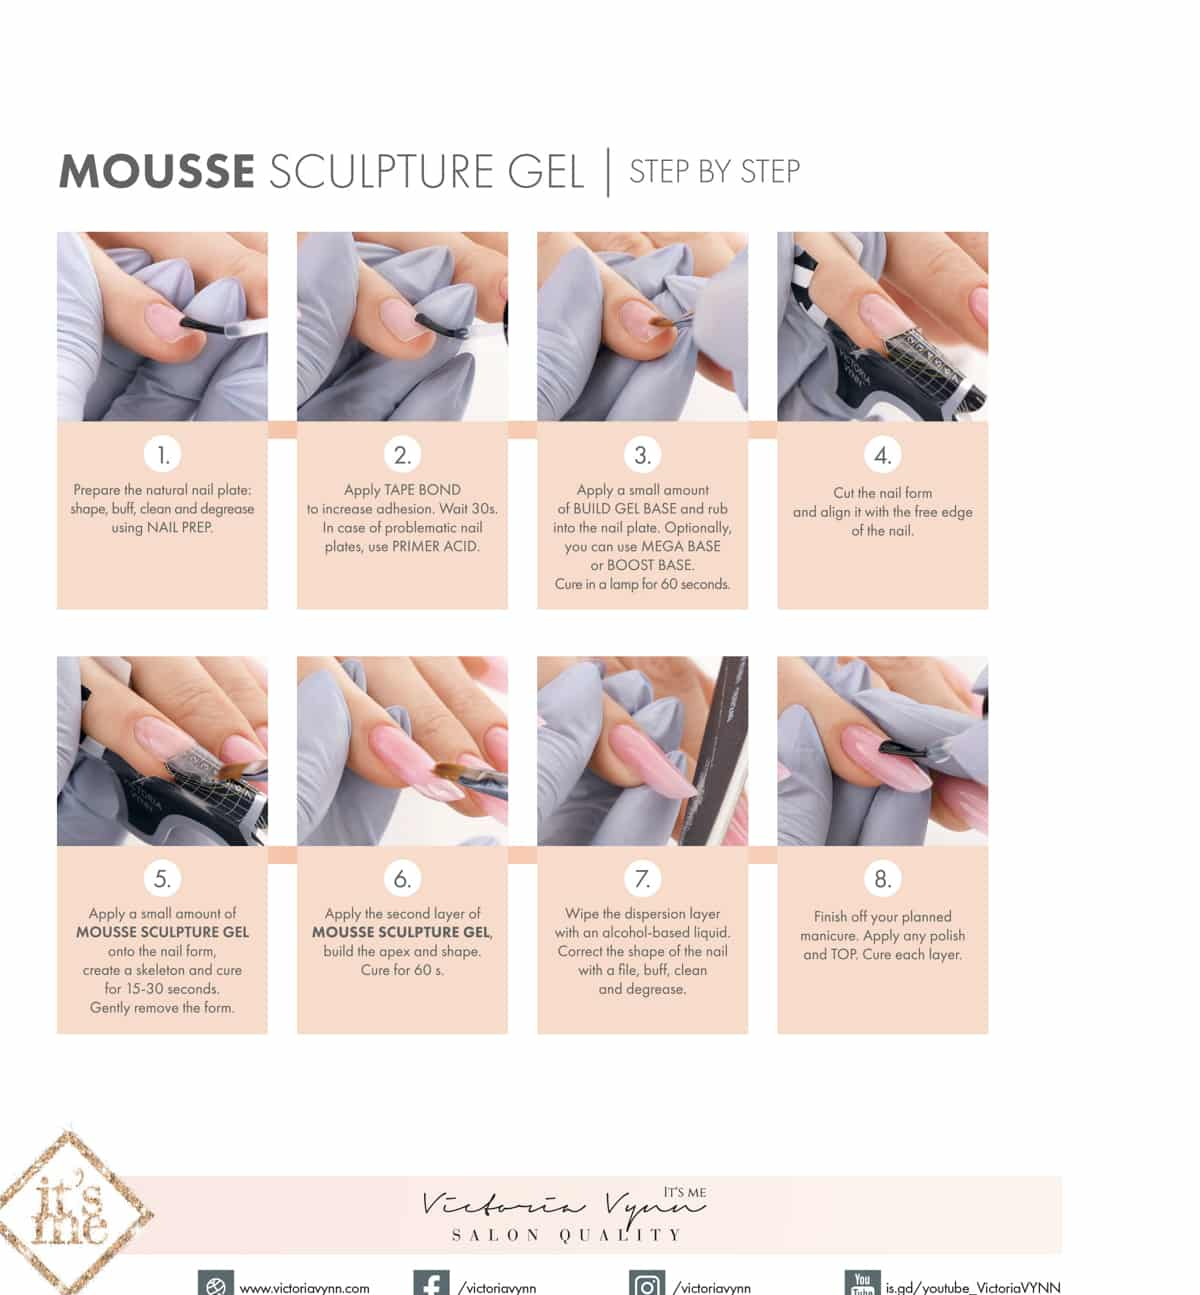 Victoria Vynn Mousse Sculpture Gel Info 05